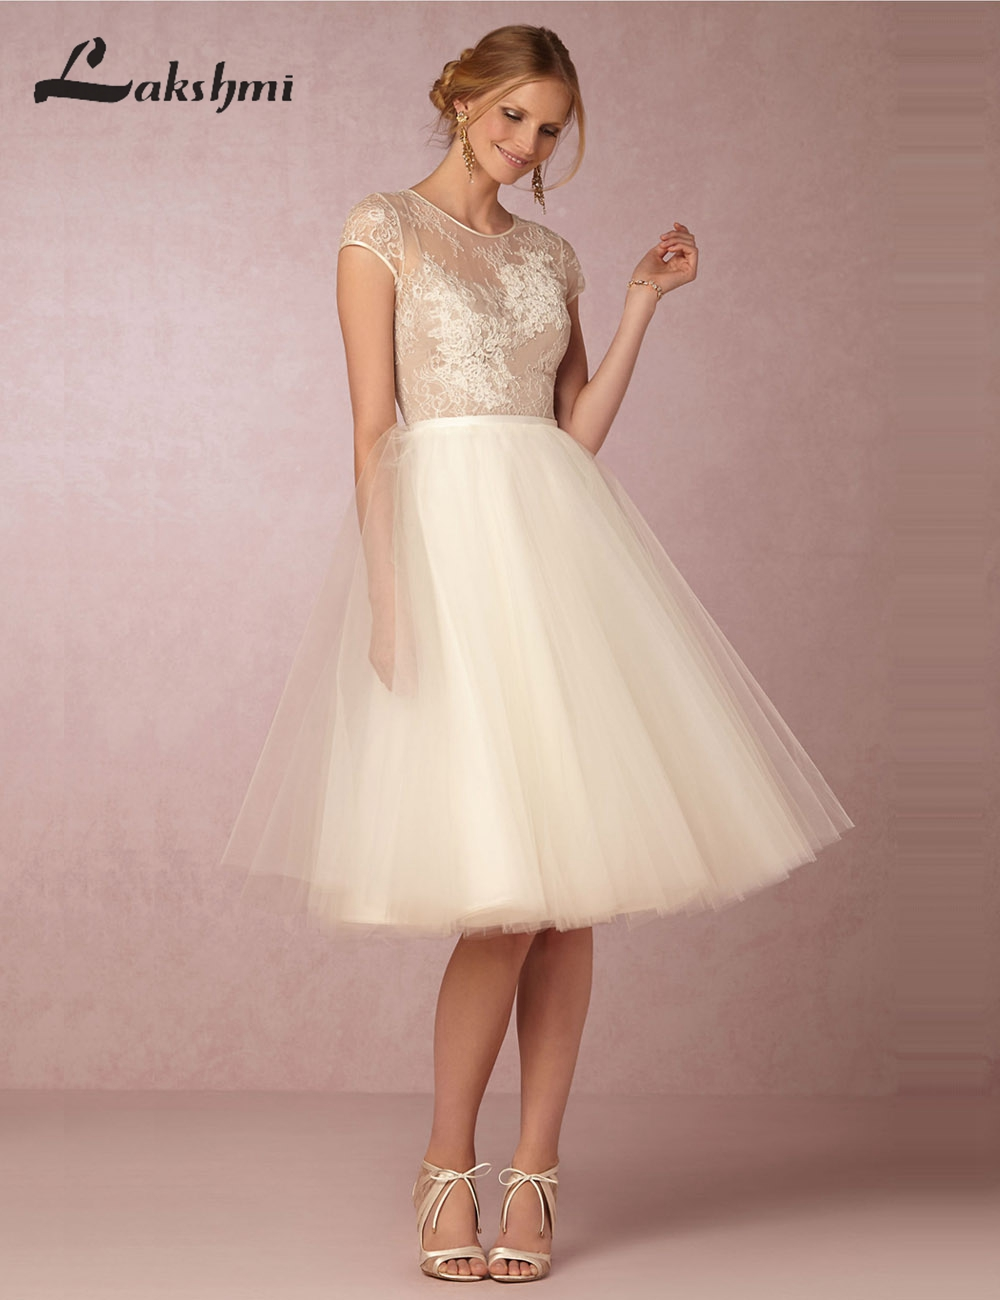 Elegant o neck short sleeve knee length wedding dresses a for Short elegant wedding dresses